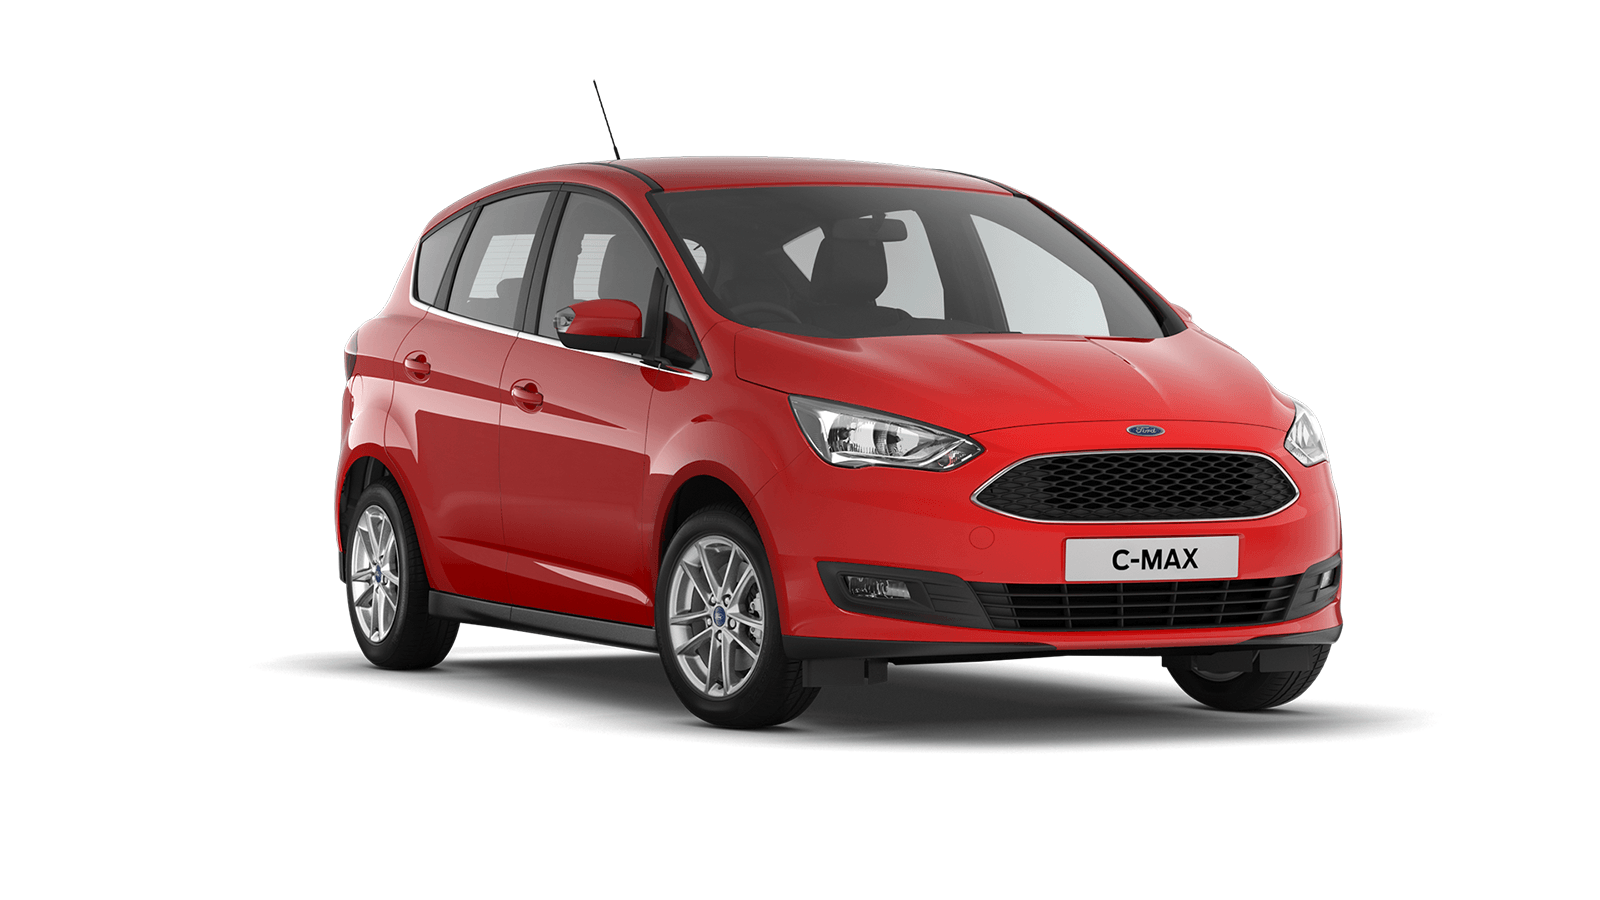 Ford C-MAX at Ludham Garage